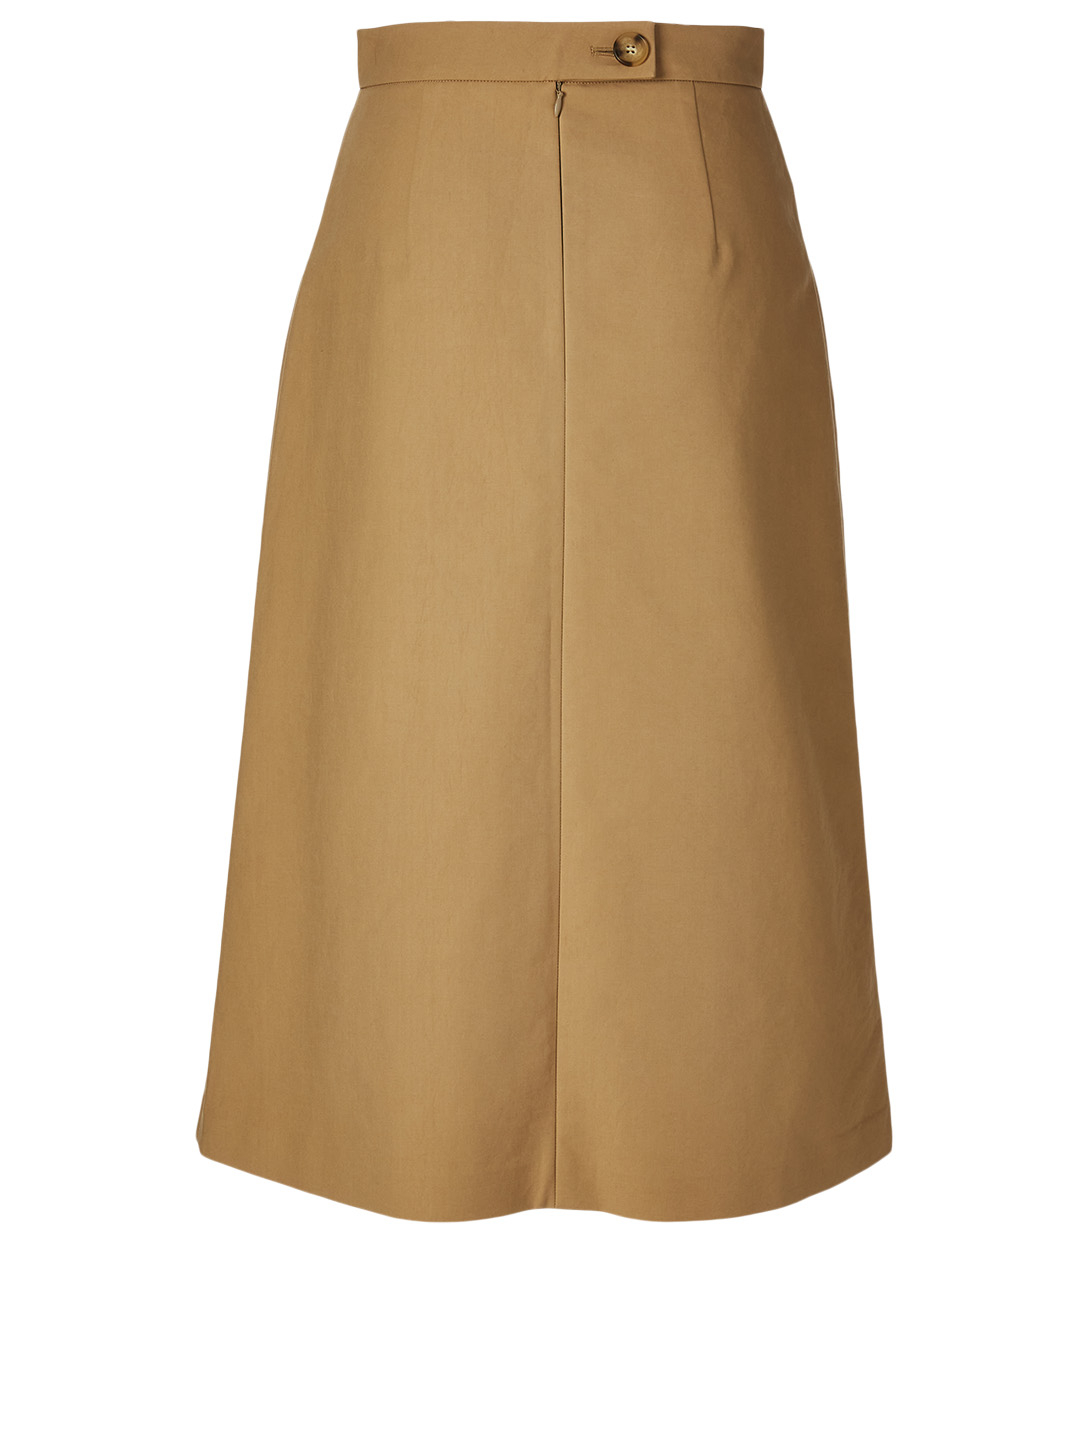 REJINA PYO Hazel Cotton Midi Skirt Women's Beige